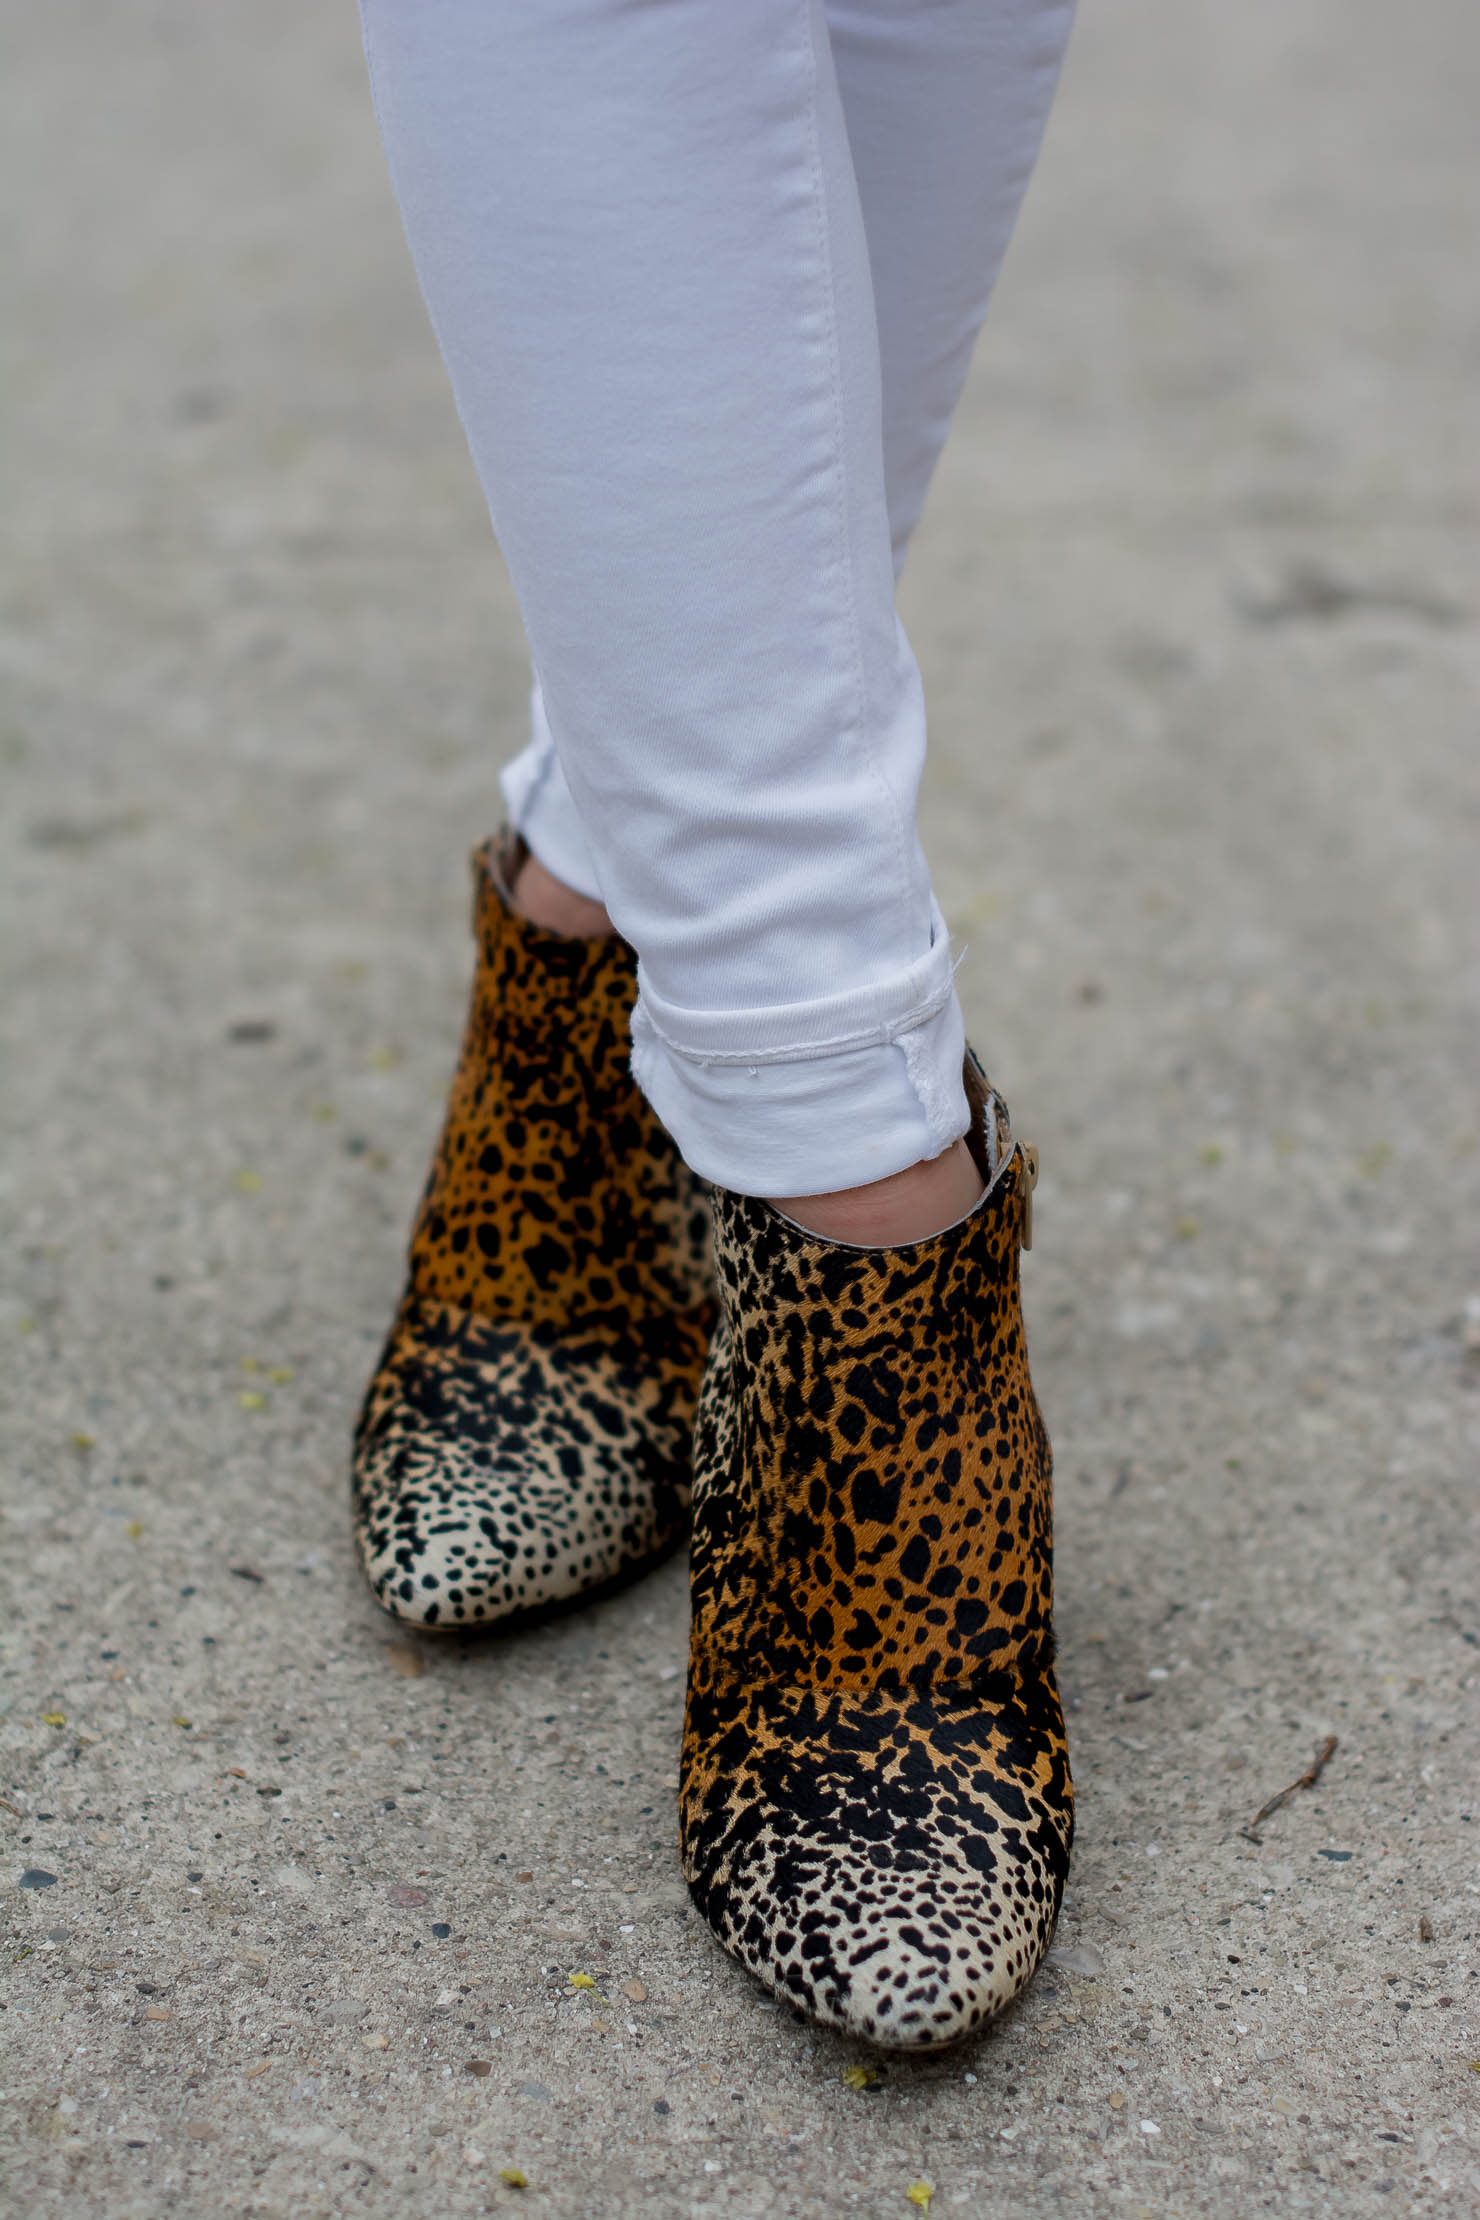 transitioning-white-jeans-for-fall-hm-denim-bell-sleeve-top-matisse-leopard-booties-metallic-bag-tassel-charms-9